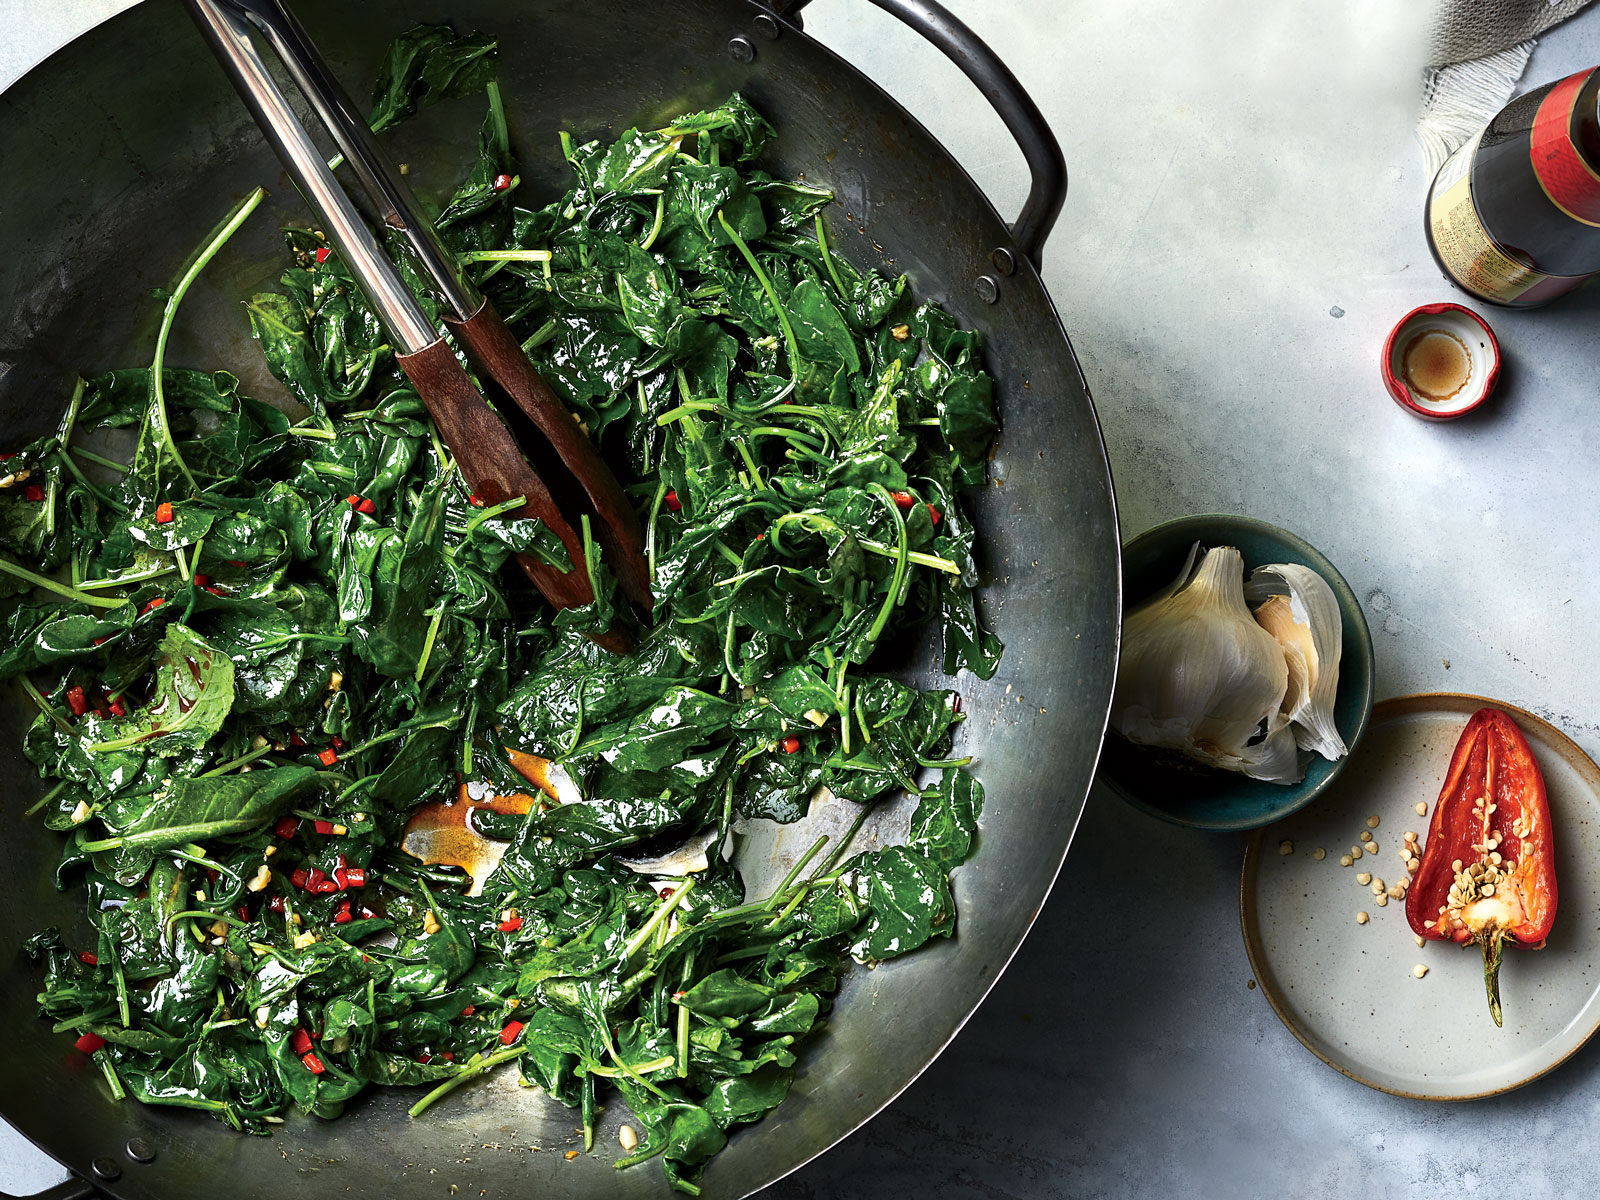 Baby Kale Stir-Fried with Oyster Sauce